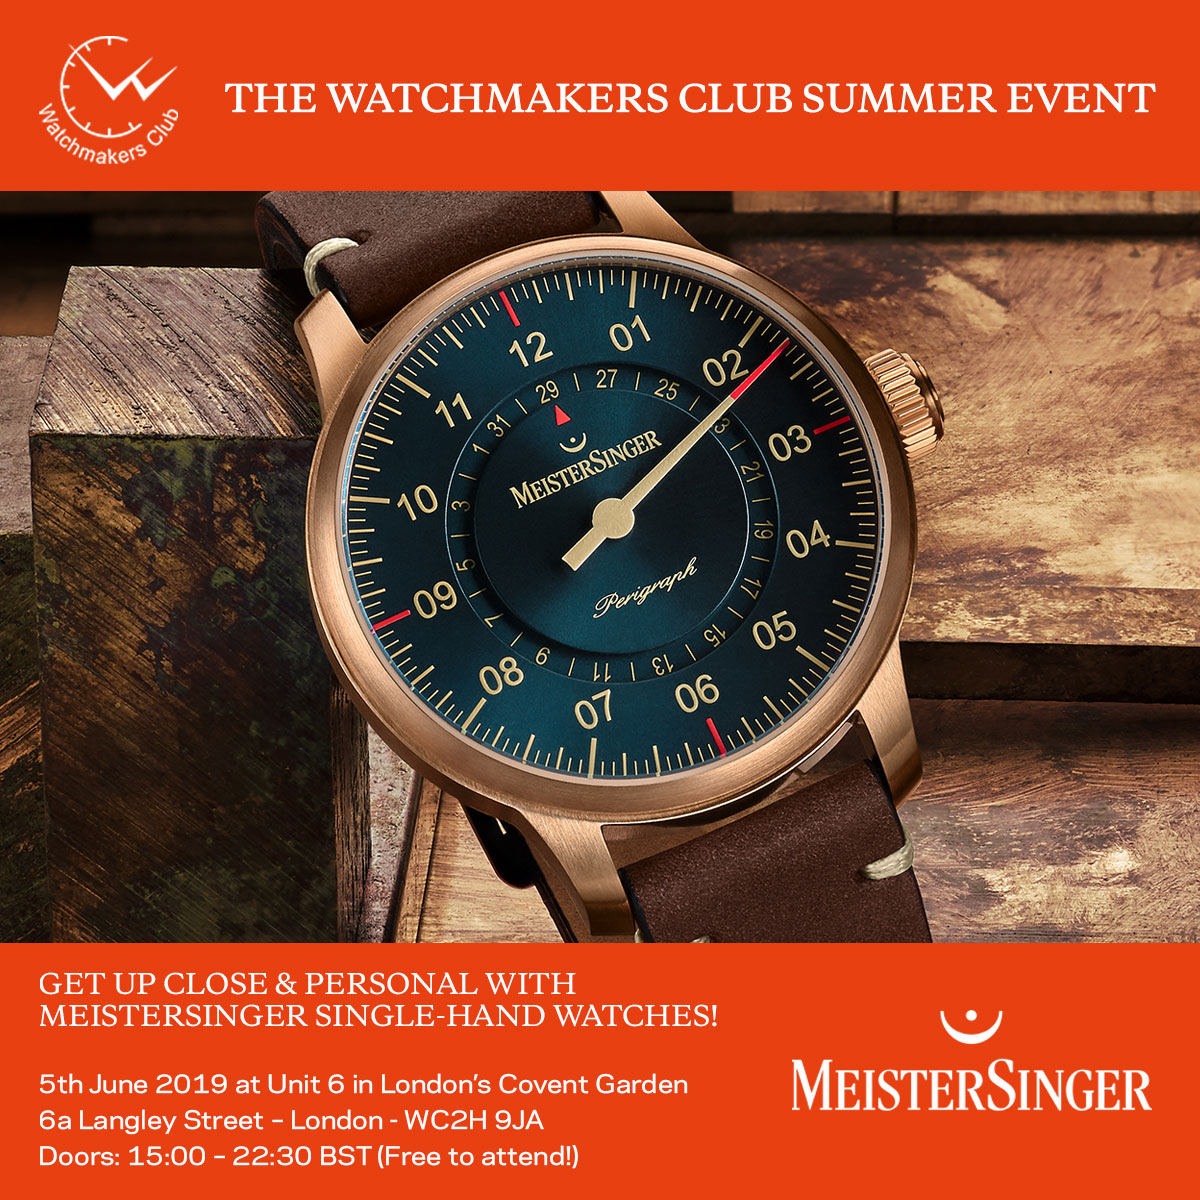 PRESENTING THE WATCHMAKERS CLUB EVENT JUNE 2019